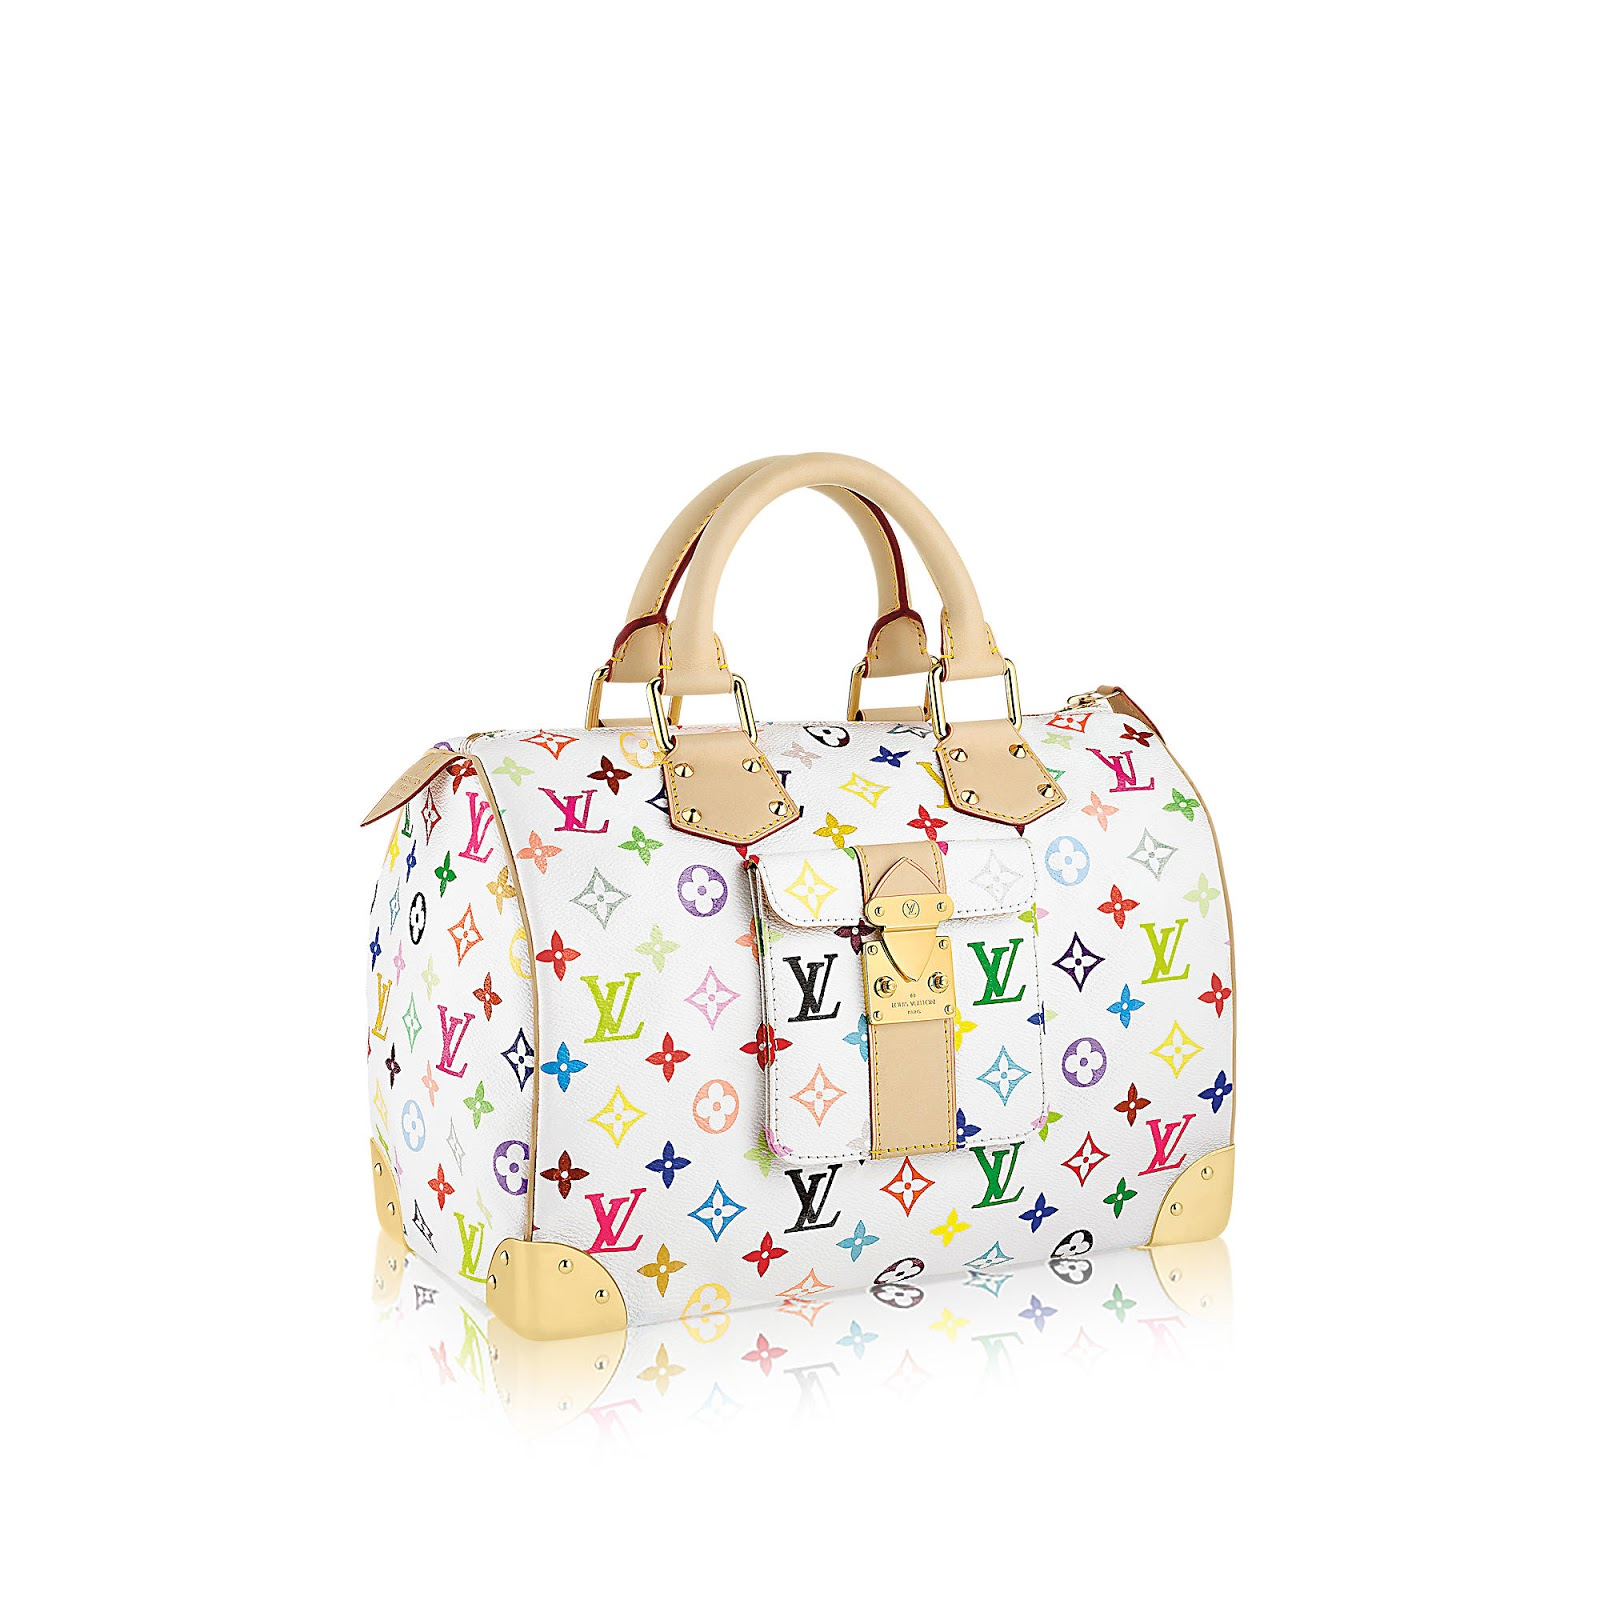 Louis Vuitton is Discontinuing Its Iconic Murakami MonogramBags